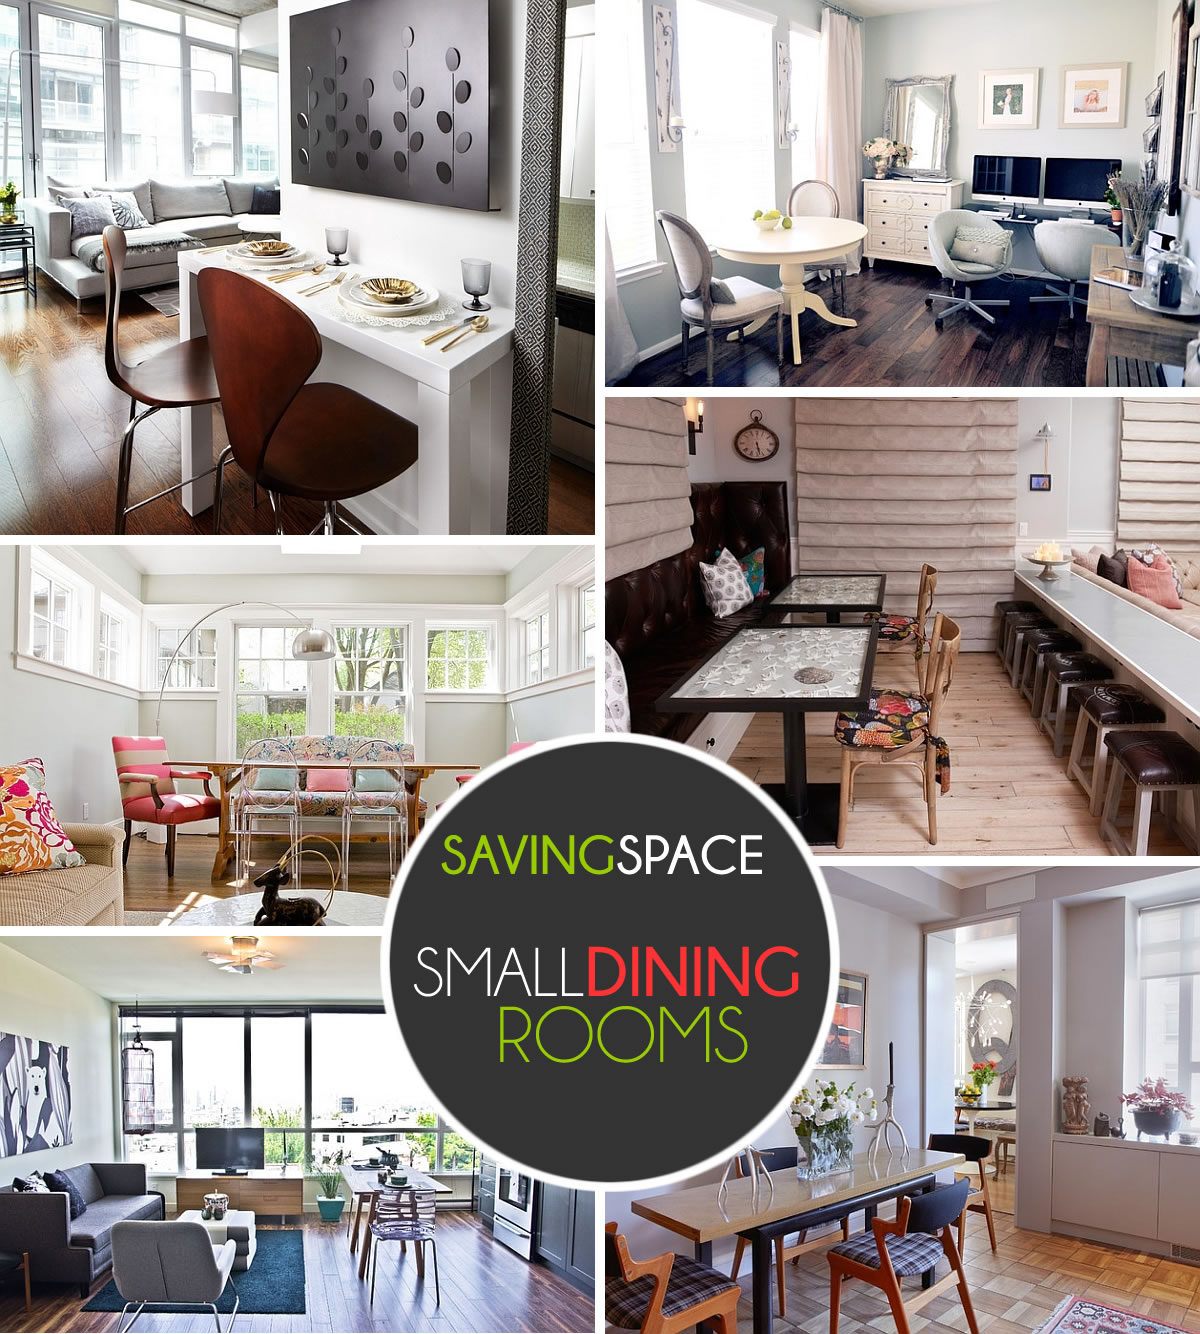 Exceptional Small Dining Rooms That Save Up On Space